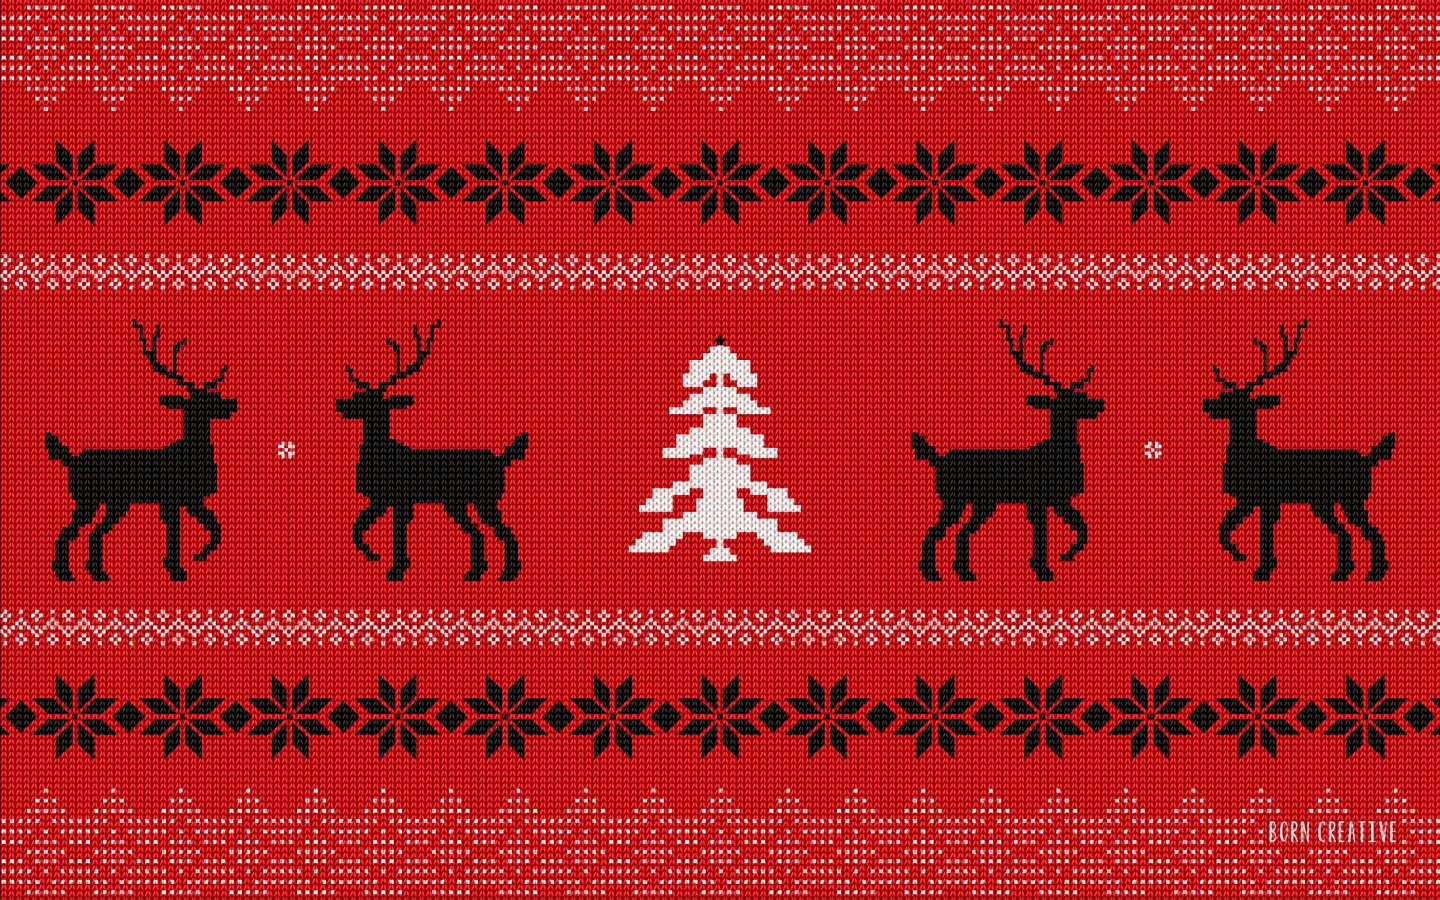 Download ugly christmas sweater hd wallpaper for 1440 x 900